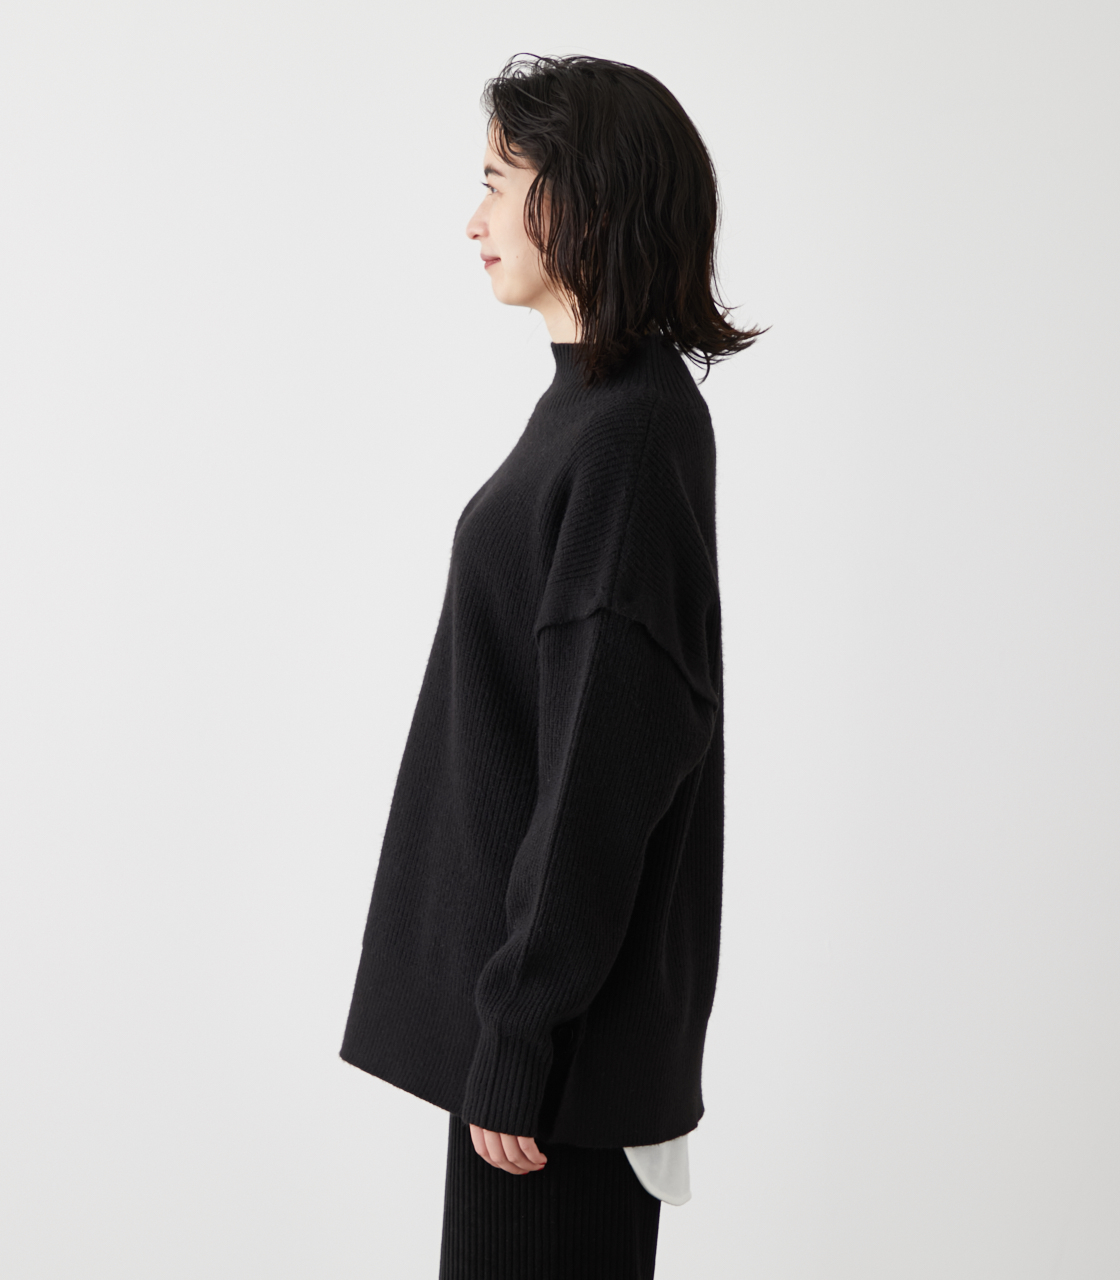 2WAY SLEEVE REMOVABLE TOPS/2WAYスリーブリムーバブルトップス 詳細画像 BLK 6